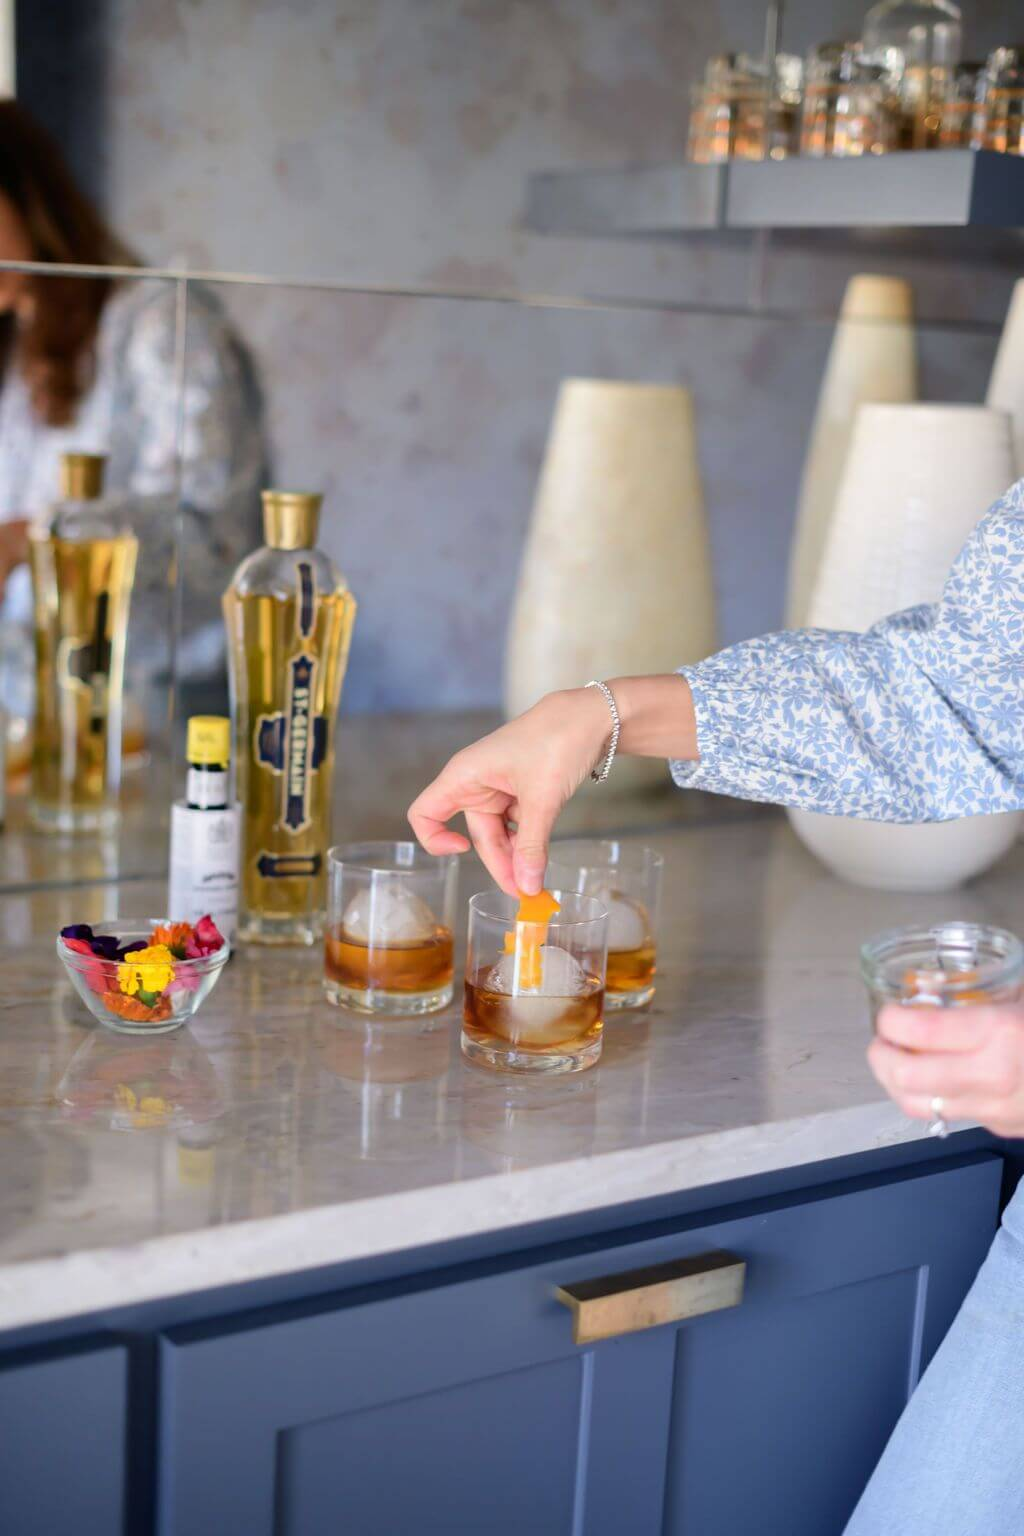 placing an orange peel in a glass filled with bourbon, bitters and elderflower